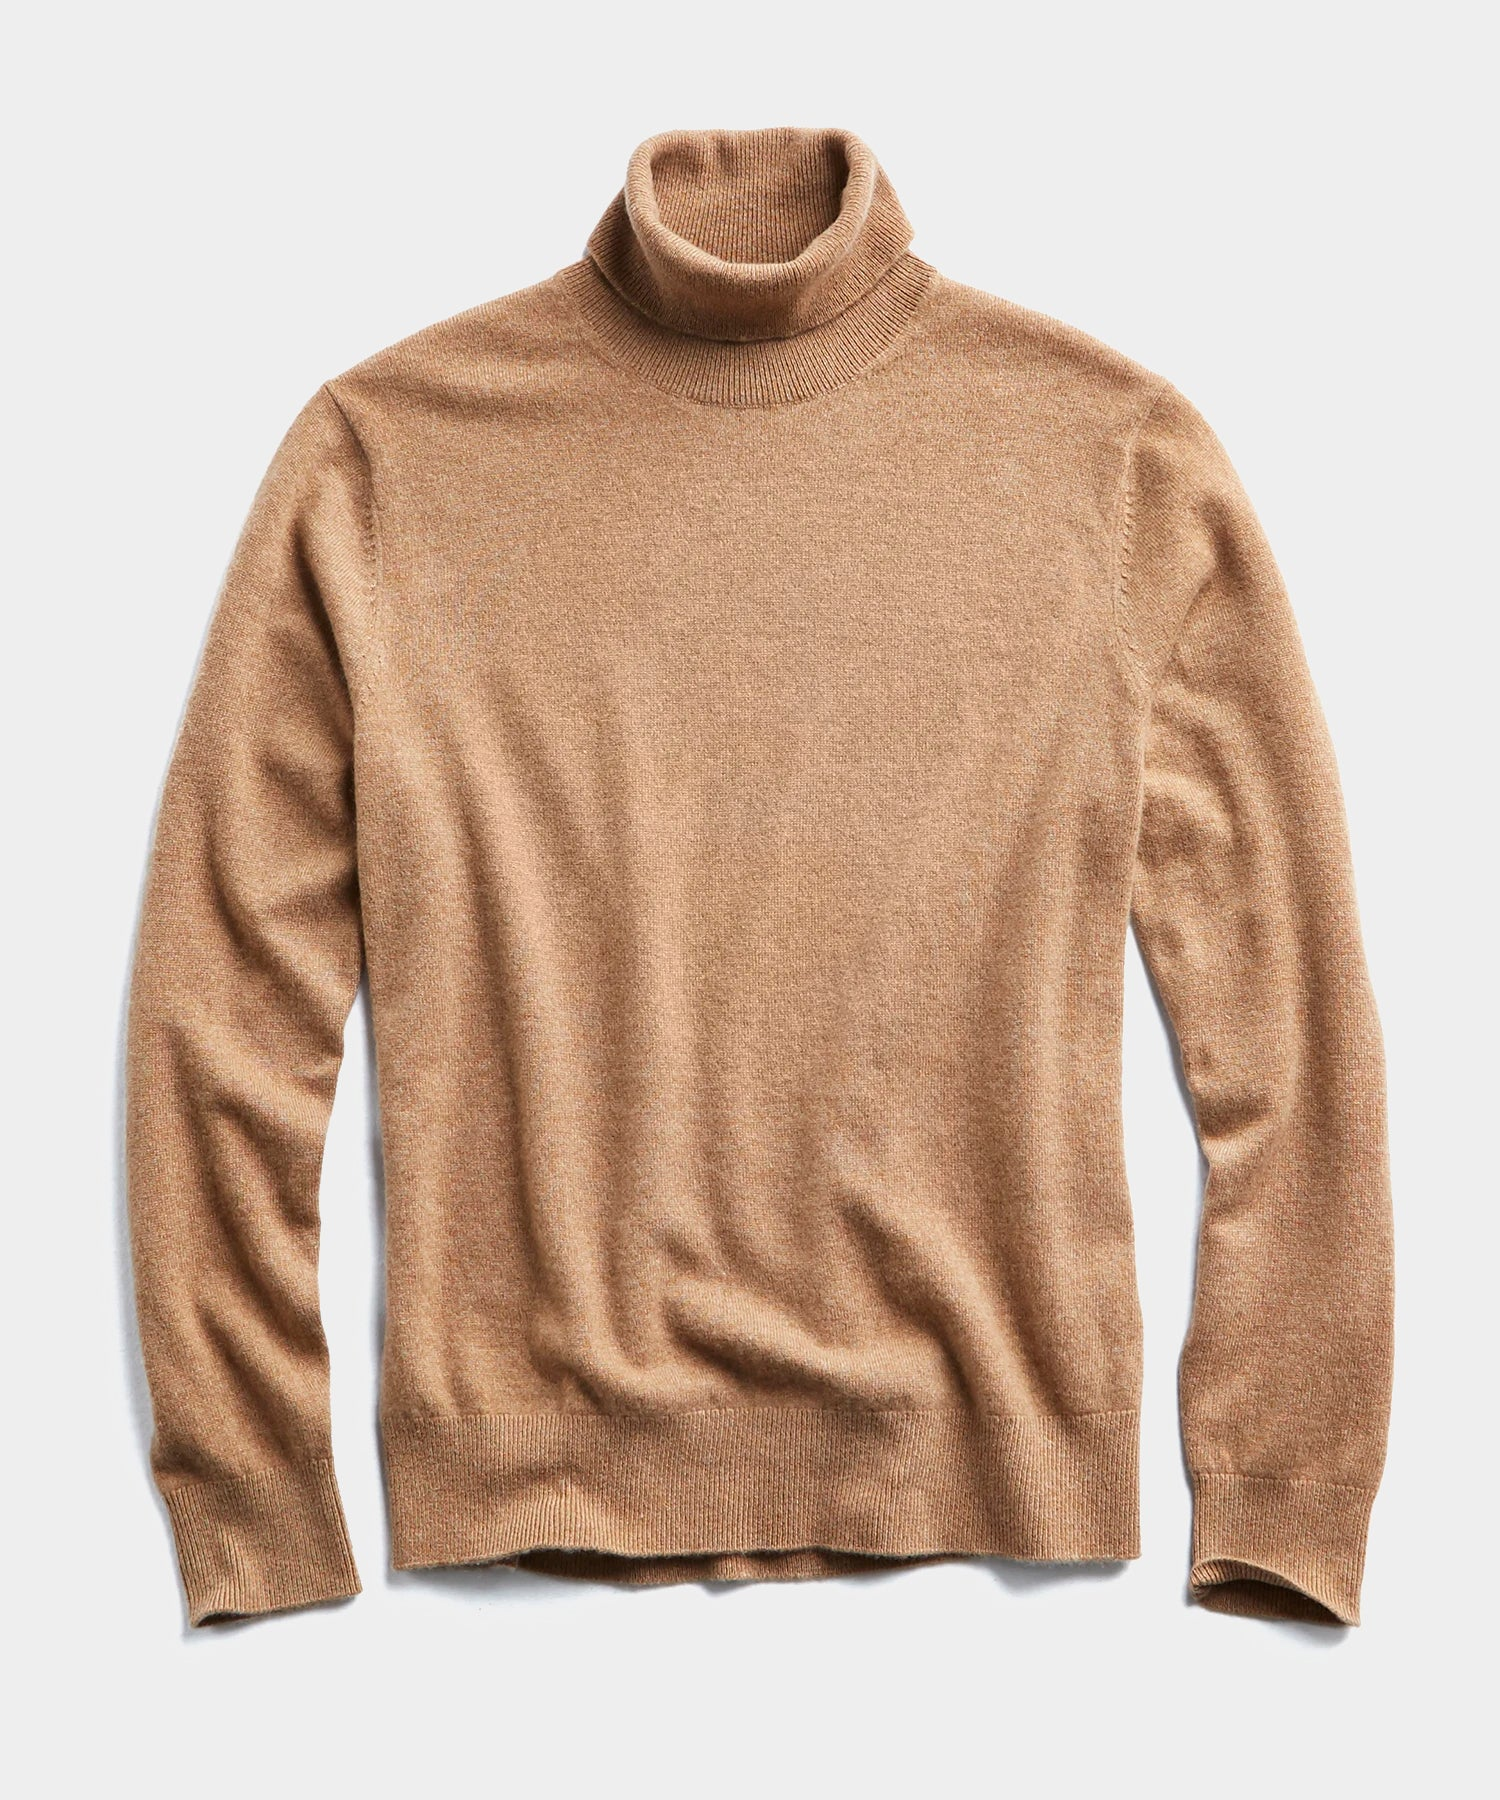 Cashmere Turtleneck in Camel